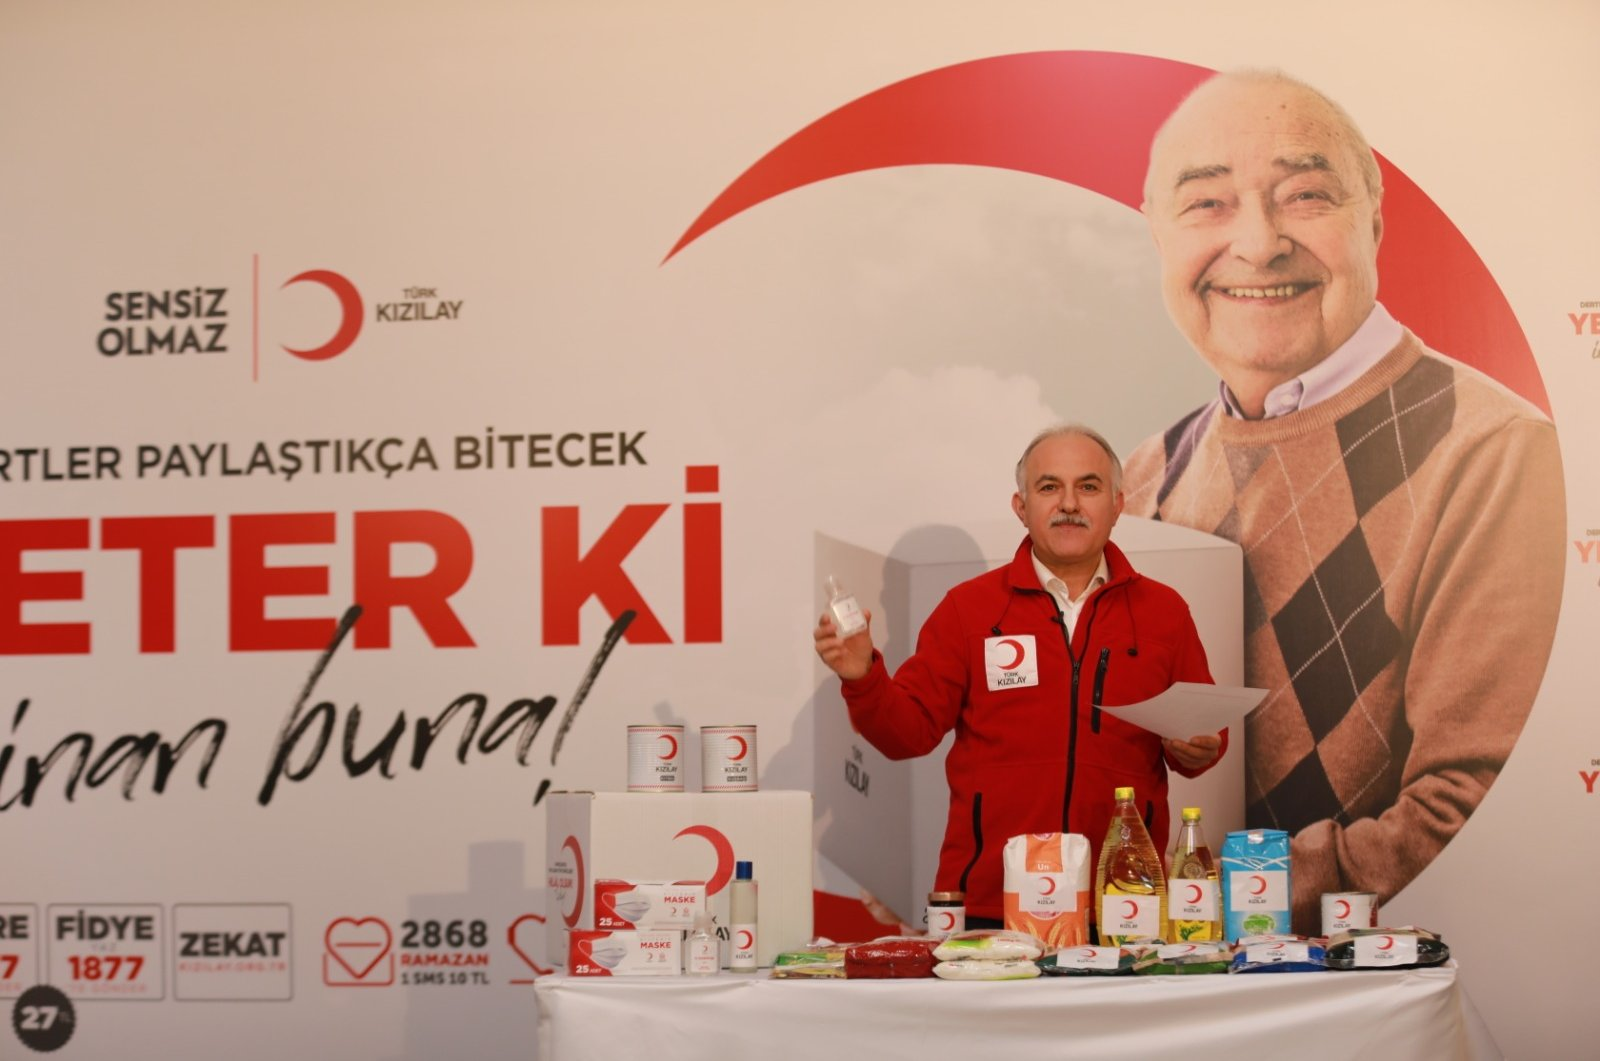 The head of the Turkish Red Crescent, Kerem Kınık, shows the content of aid boxes in a live video stream, Ankara, April 15, 2020. (DHA Photo)